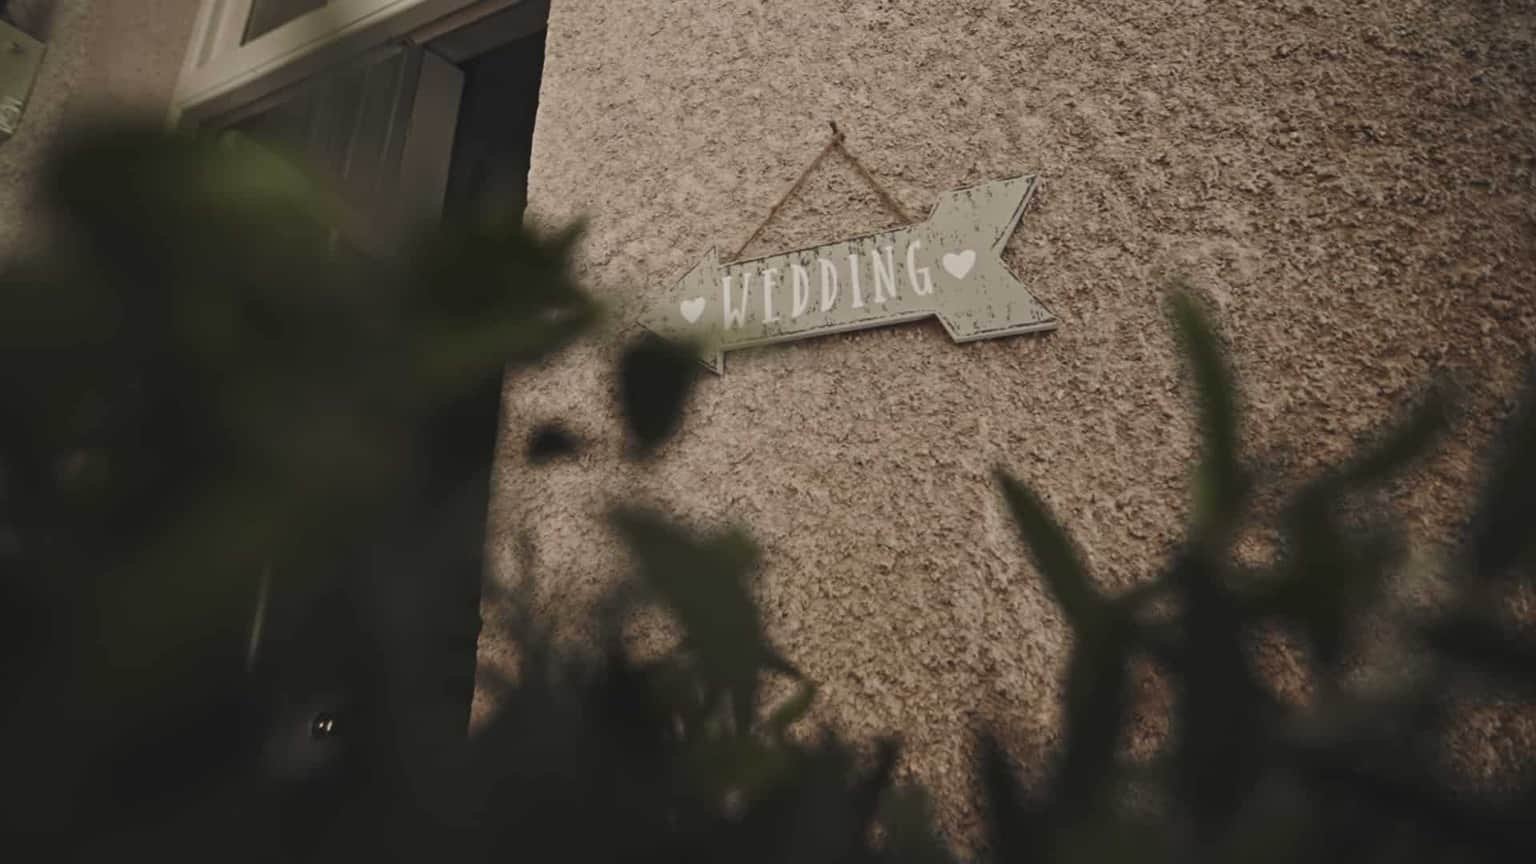 wedding arrow showing road to marquee